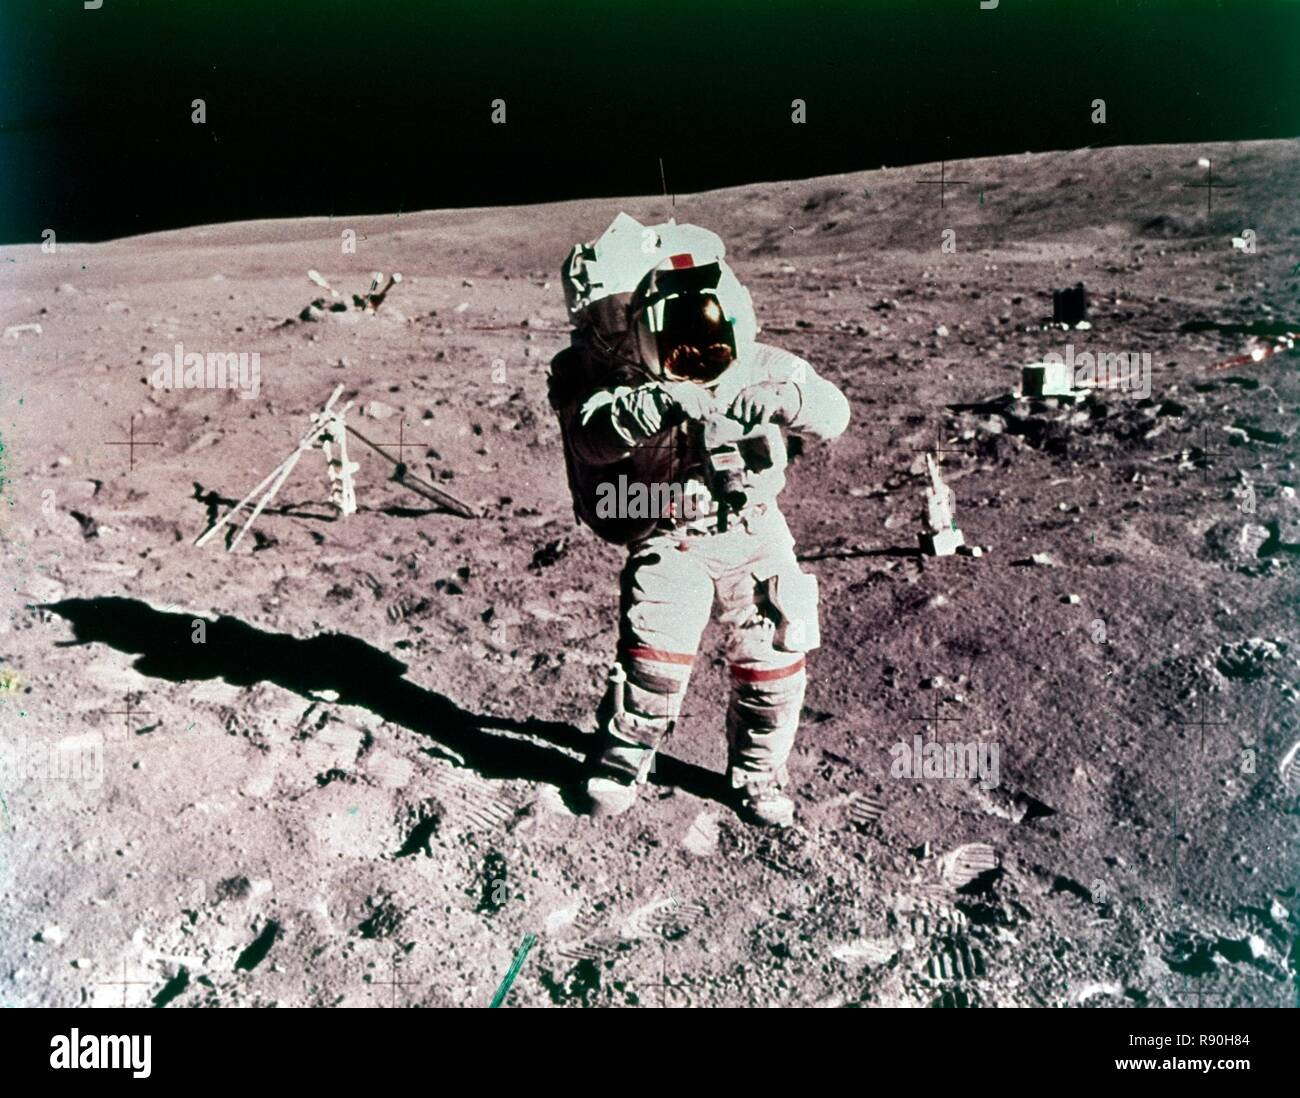 Astronaut John Young on the lunar surface, Apollo 16 mission, 21 April 1972. Commander John Young performing the first Apollo 16 Spacewalk at the Apollo Lunar Surface Experiments Package (ALSEP) deployment site, Descartes landing site. The lunar surface drill is just behind and to the right, rack and bore stems (left), with the three-sensor Lunar Surface Magnetometer beyond. The dark object in the right background is the Radioisotope Thermoelectric Generator (RTG). Between the RTG and the drill is the Heat Flow Experiment. - Stock Image